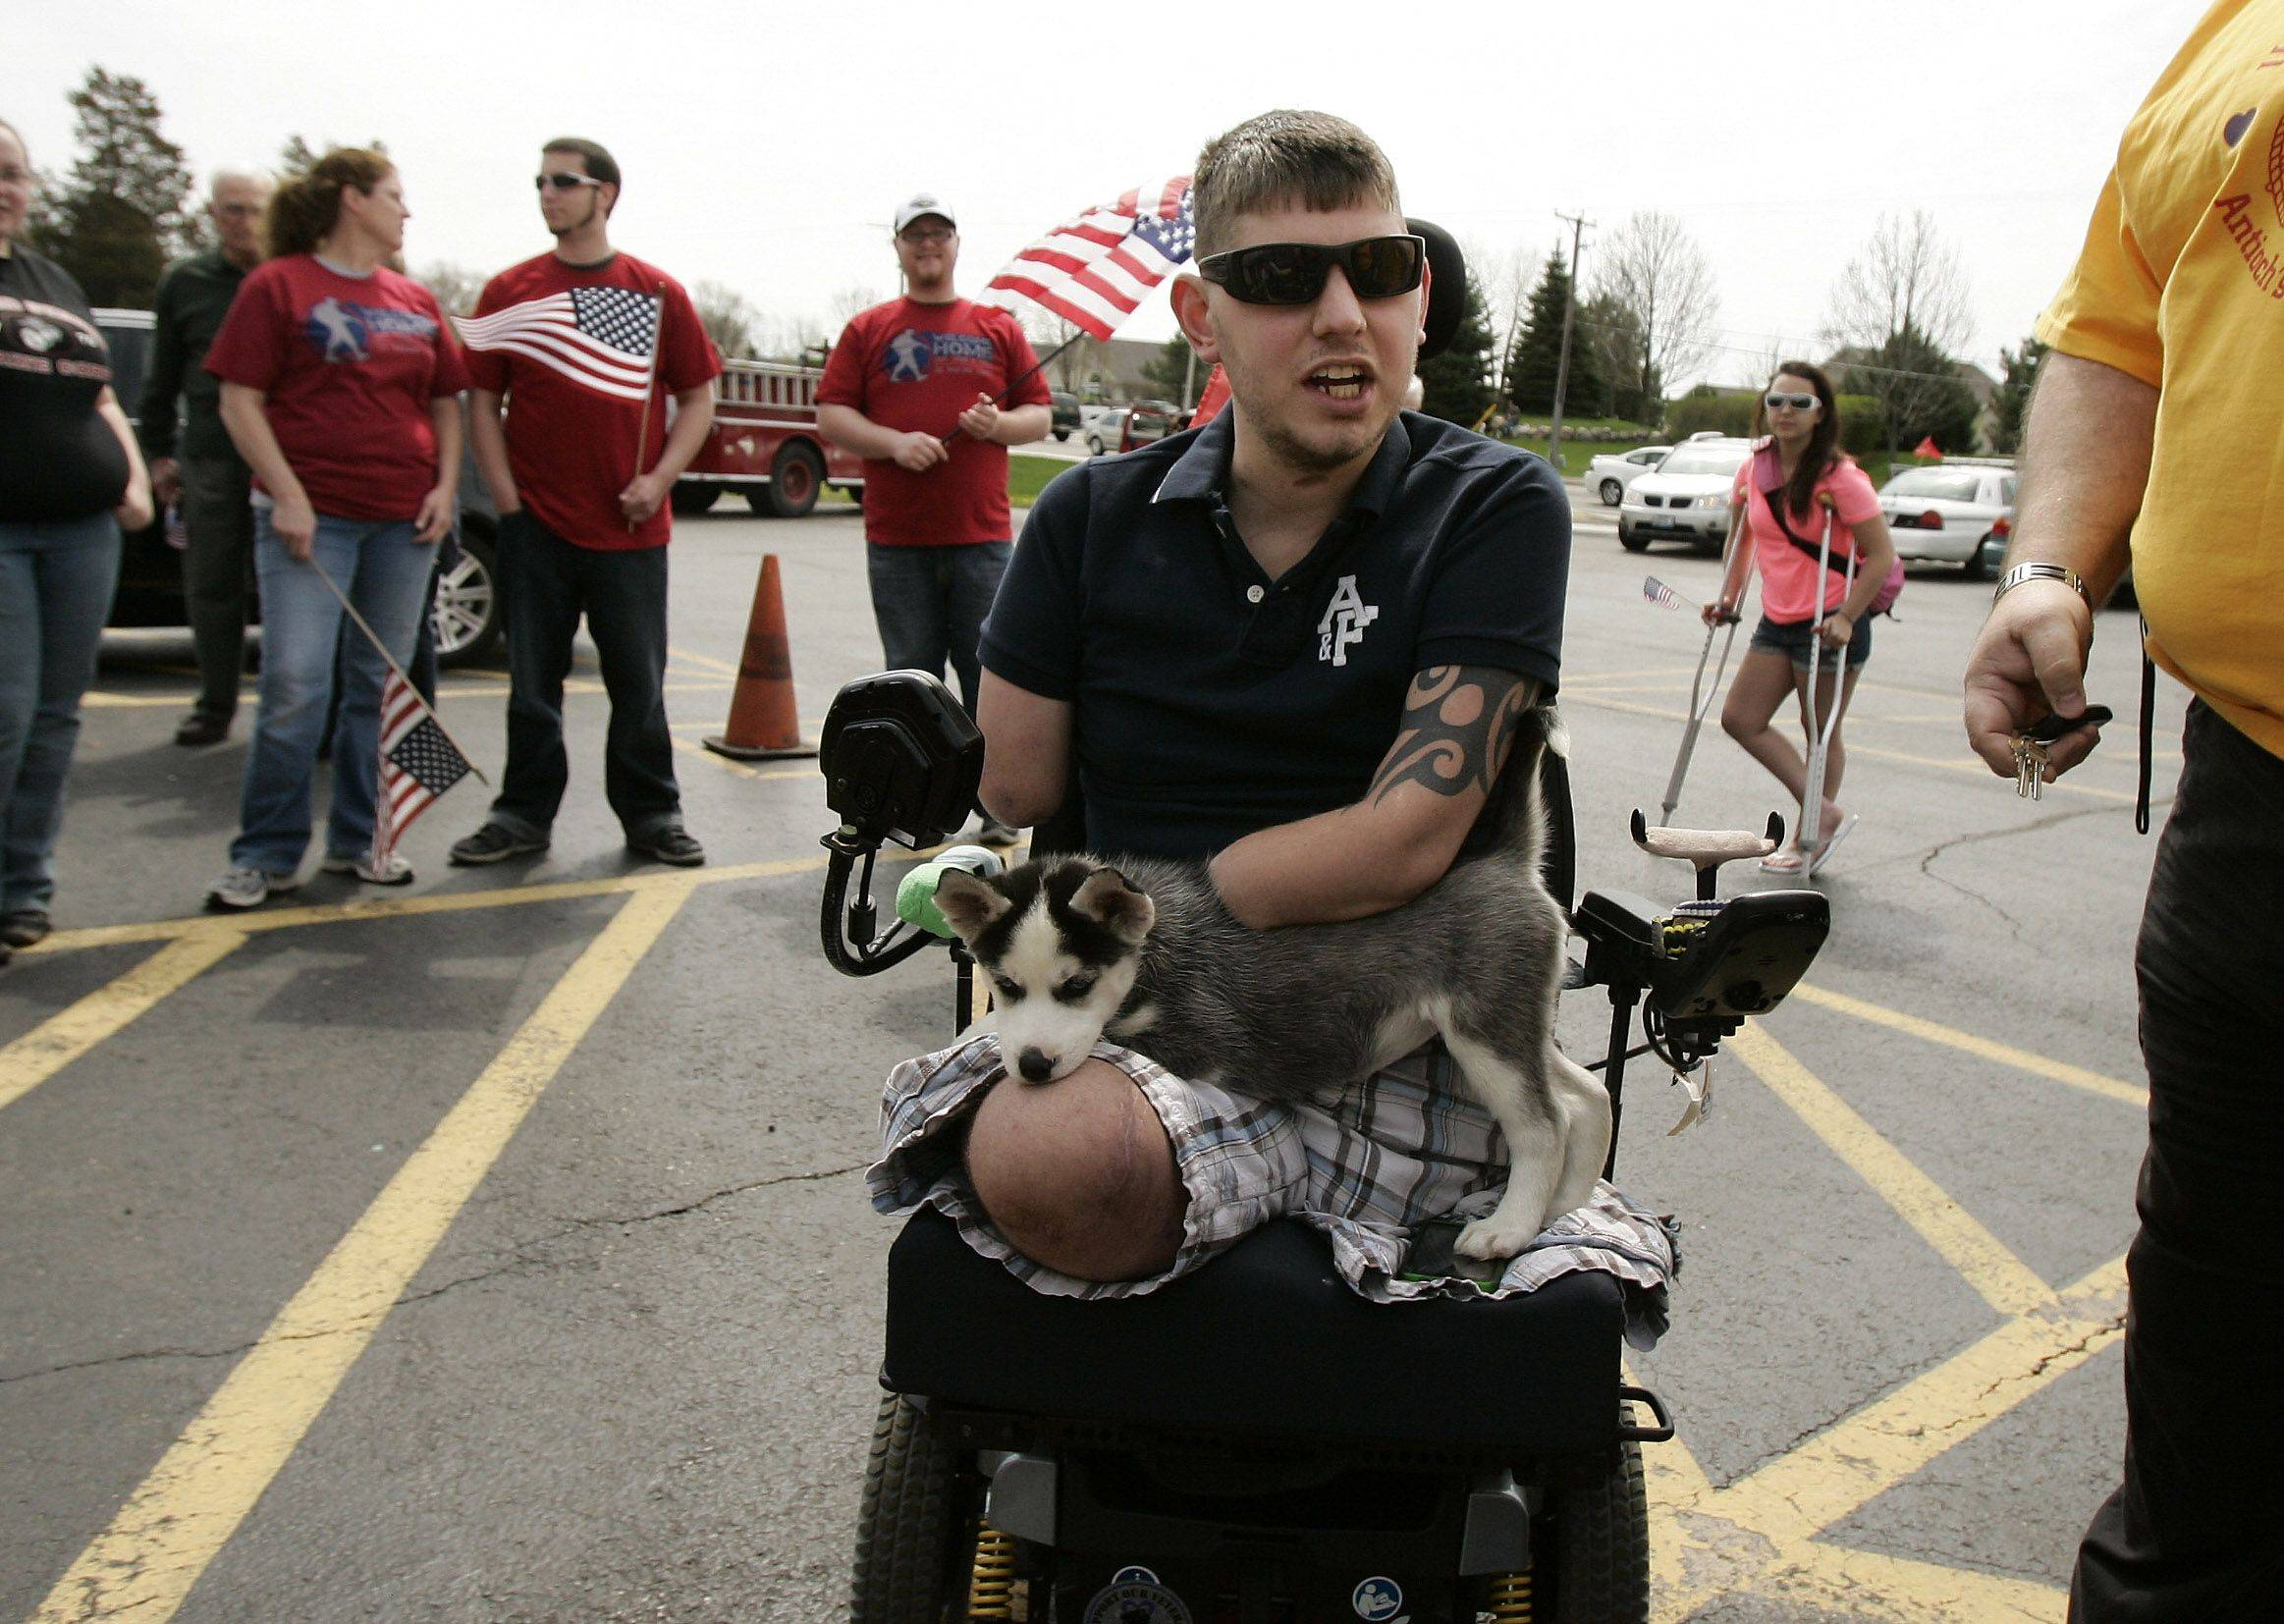 U.S. Marine Cpl. John Peck arrives Monday at VFW Post 4551 after a motorcade in his honor. Peck lost his limbs in Afghanistan last year after stepping on an explosive device.